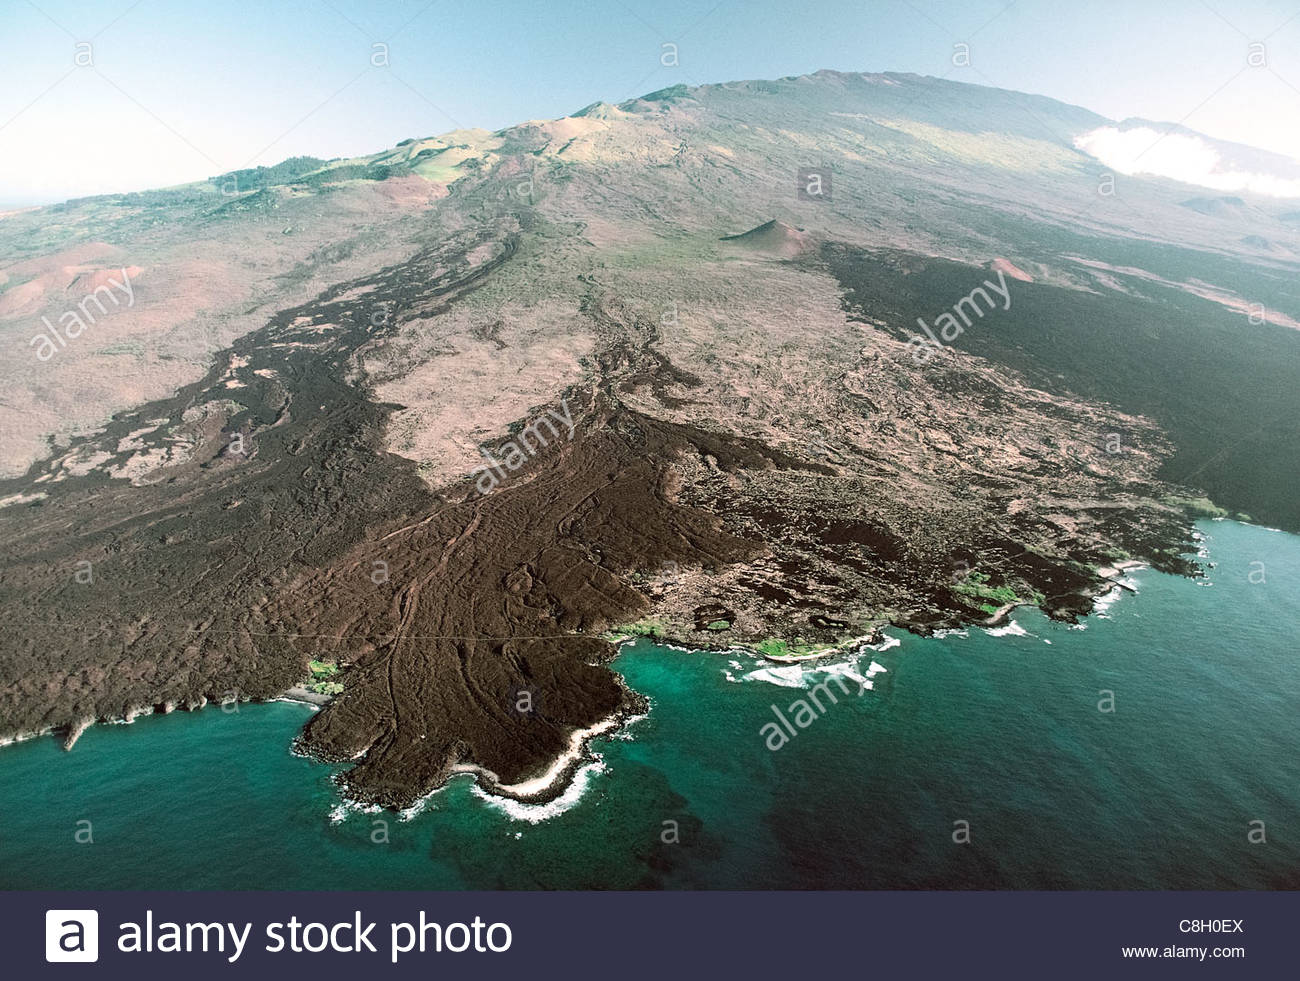 An old lava flow that reached the ocean. - Stock Image